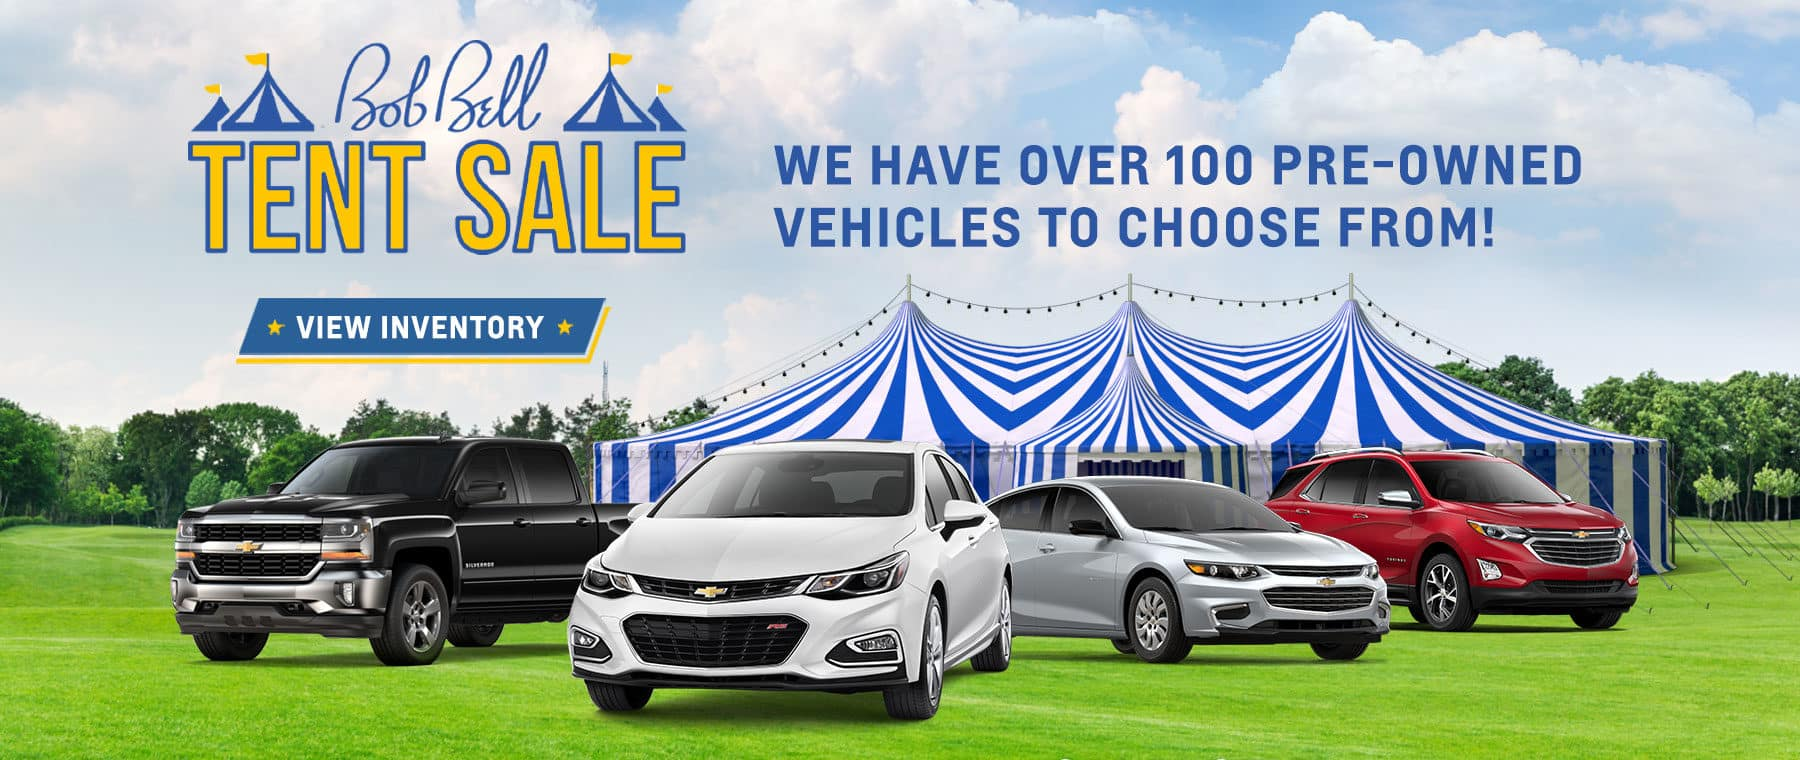 Tent-Sale-1800x760_preowned